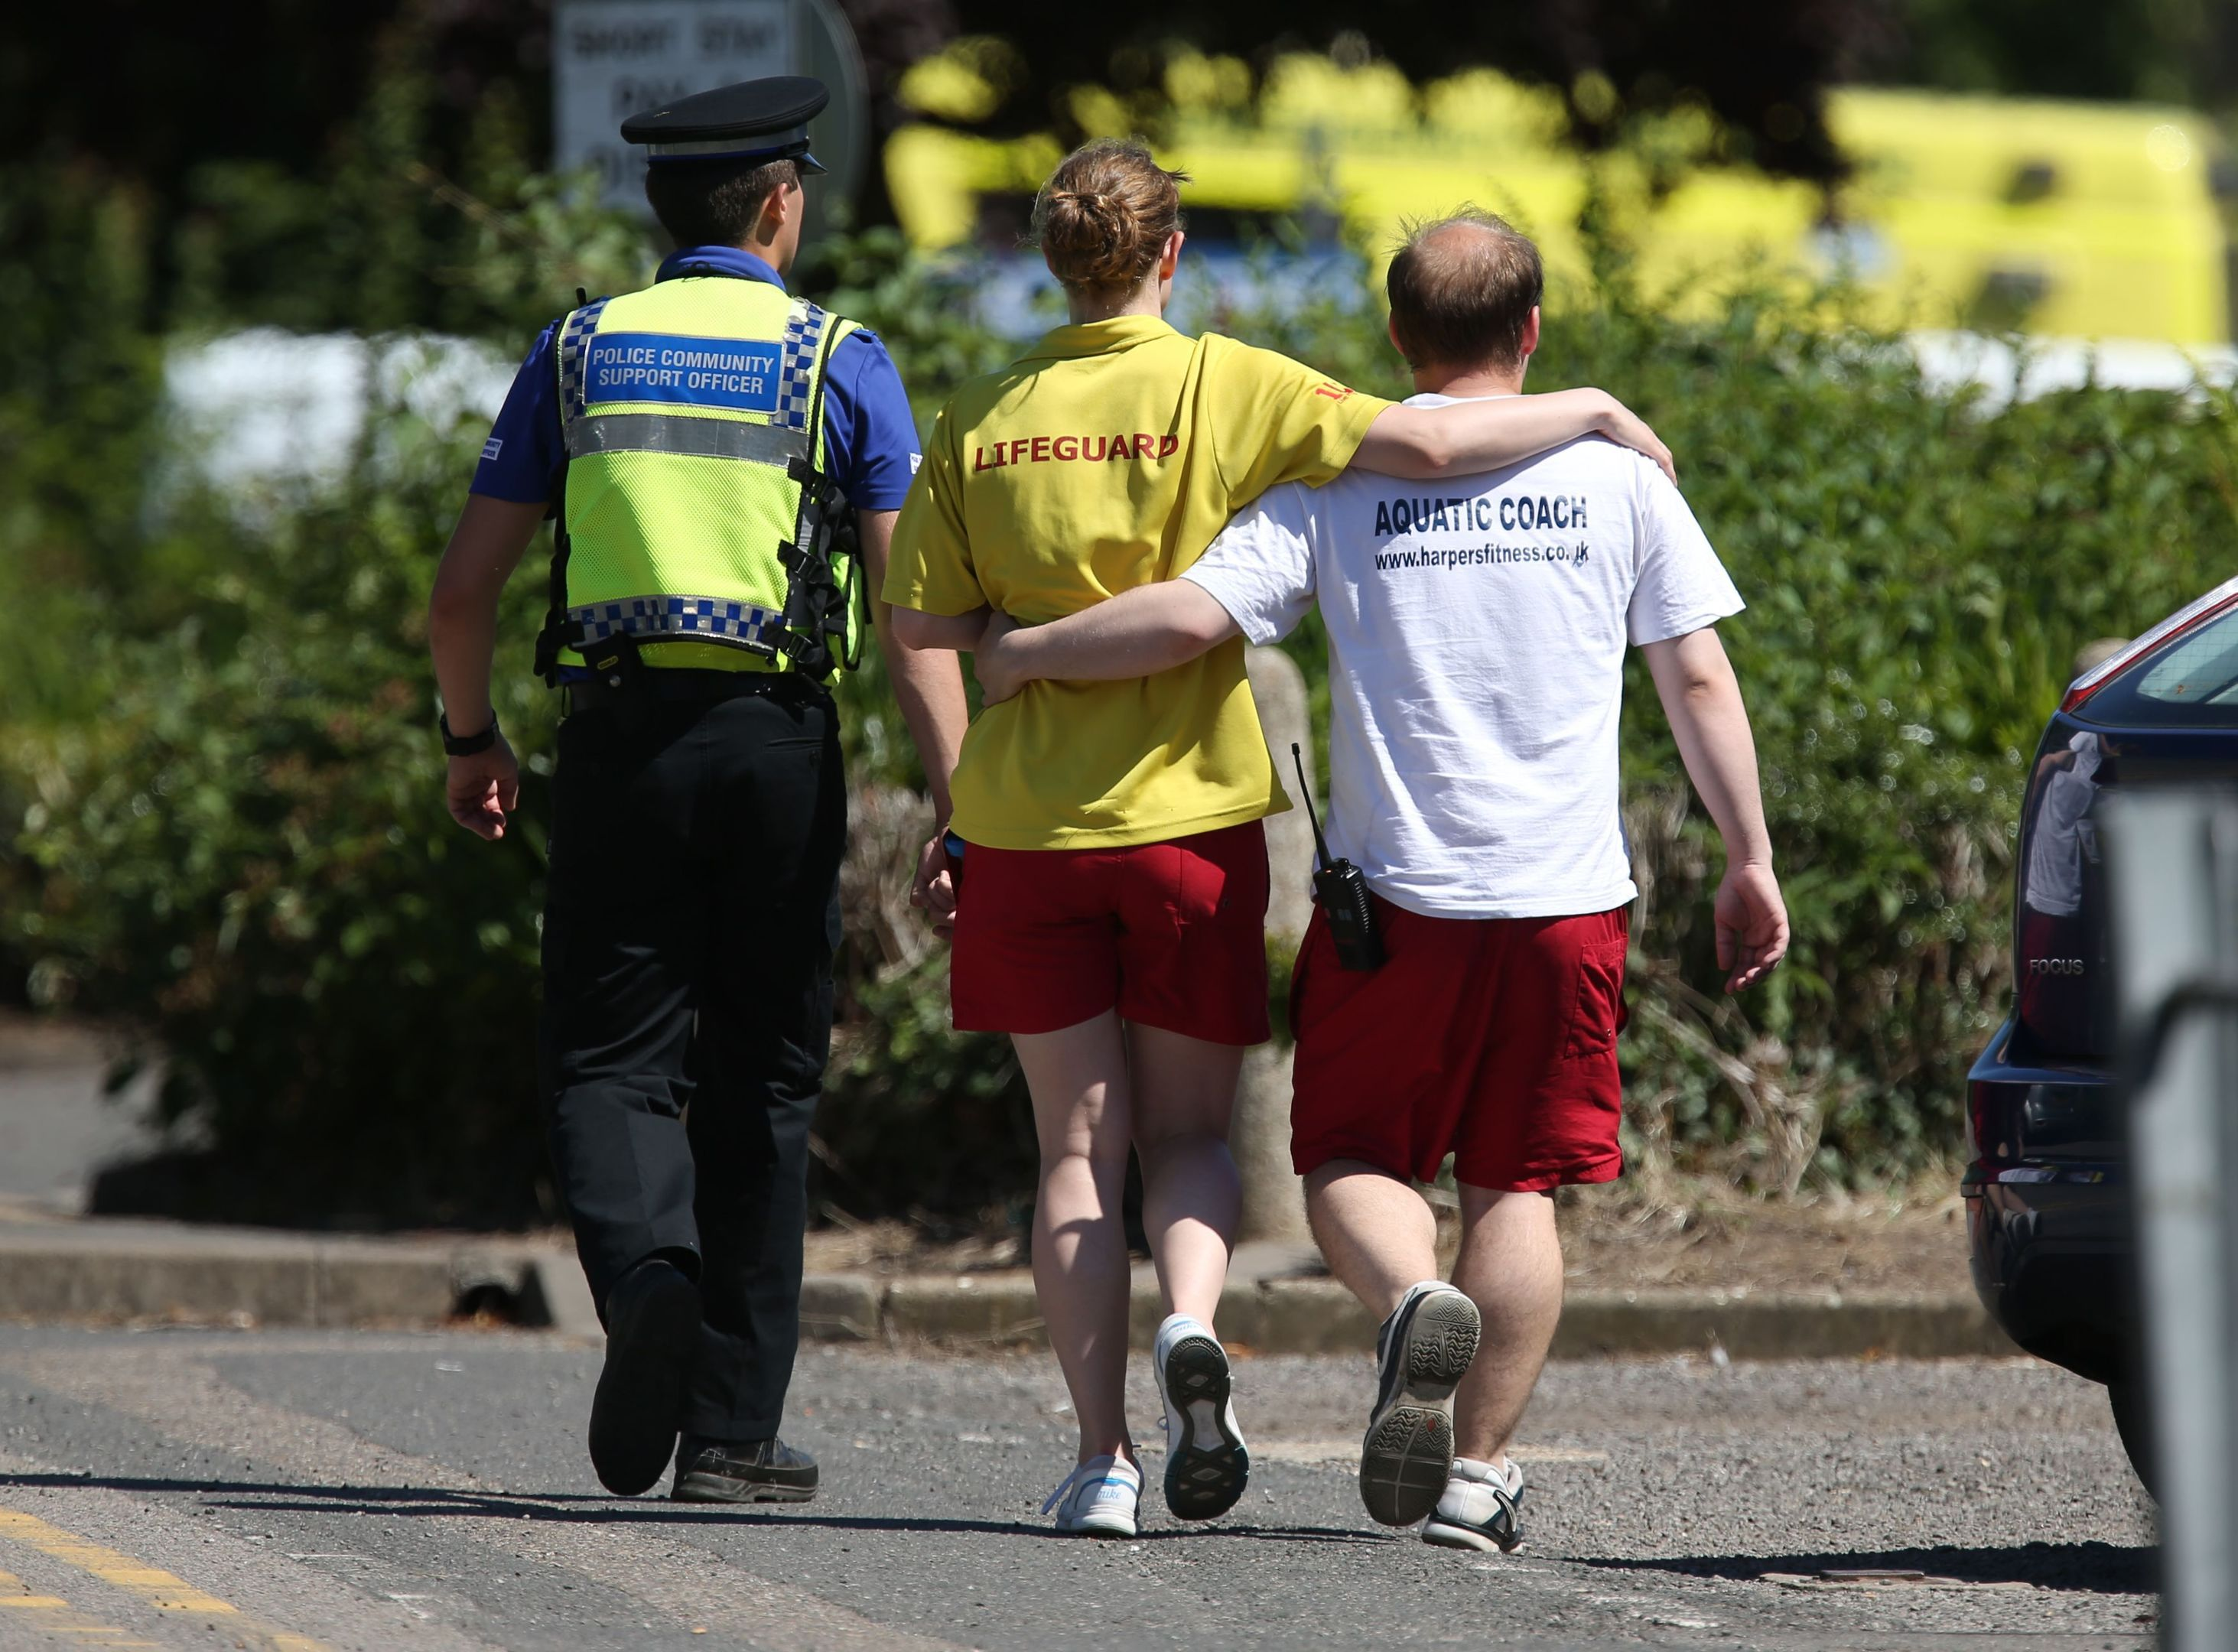 A lifeguard and swimming coach are escorted by a community support officer as they walk towards Castle Swimming Pool in Spalding, Lincolnshire, after three people including a suspected gunman have been shot dead.